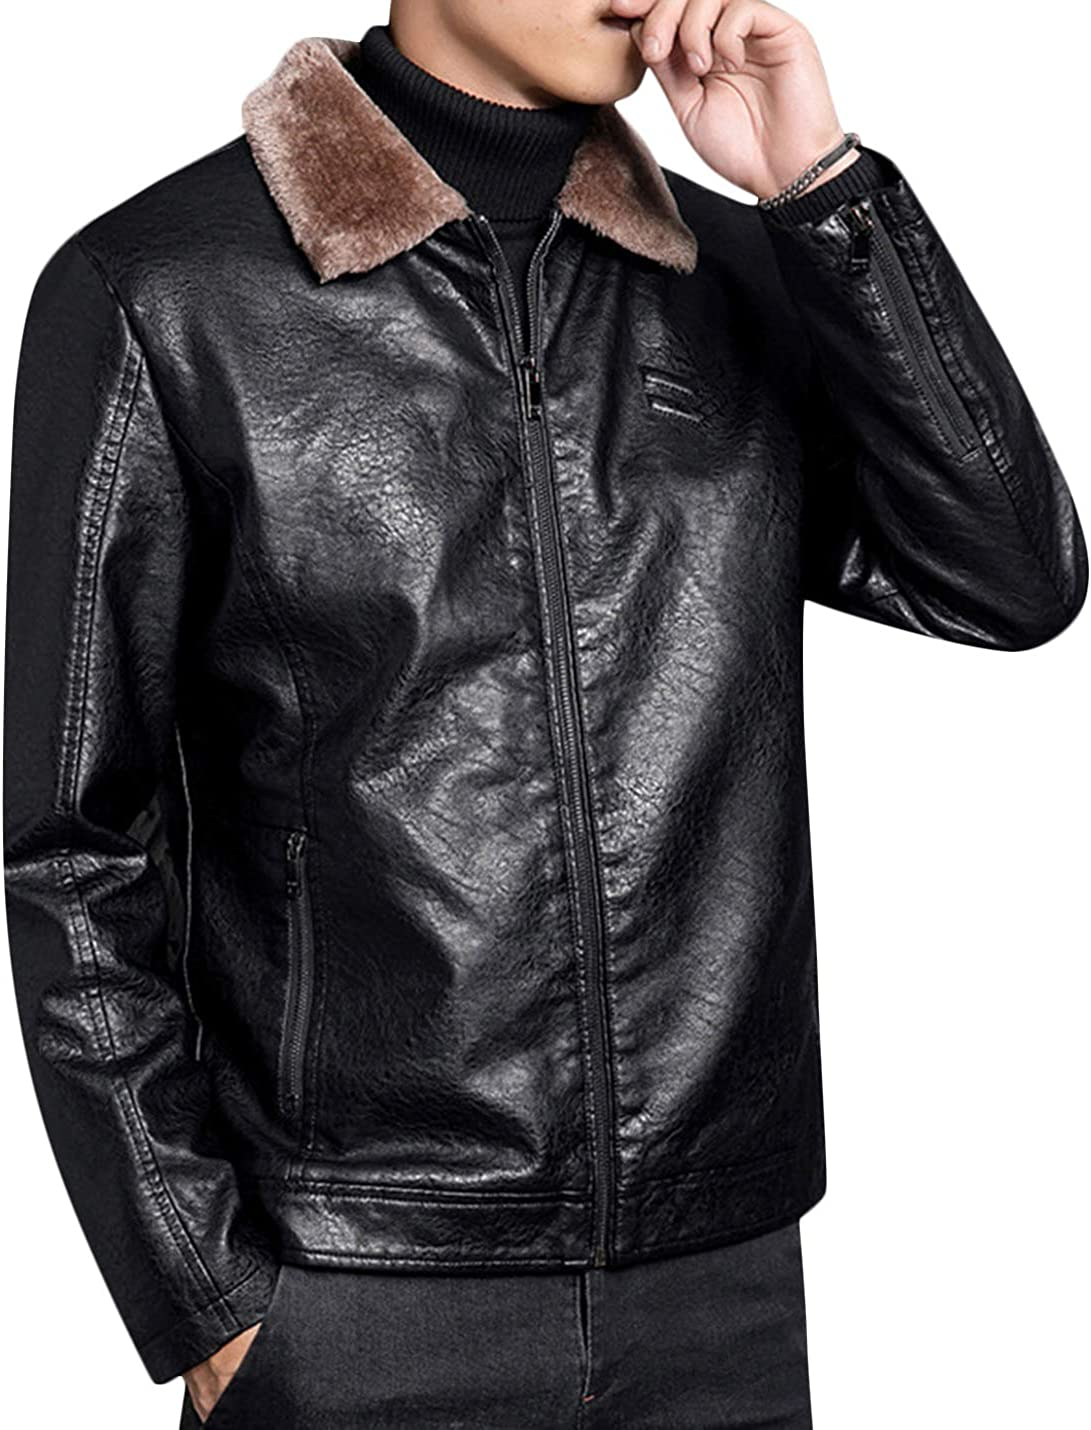 UANEO Men's Winter Warm Lapel Full Zip PU Leather Sherpa Lined Bomber Jacket Coat (Black, X-Small)